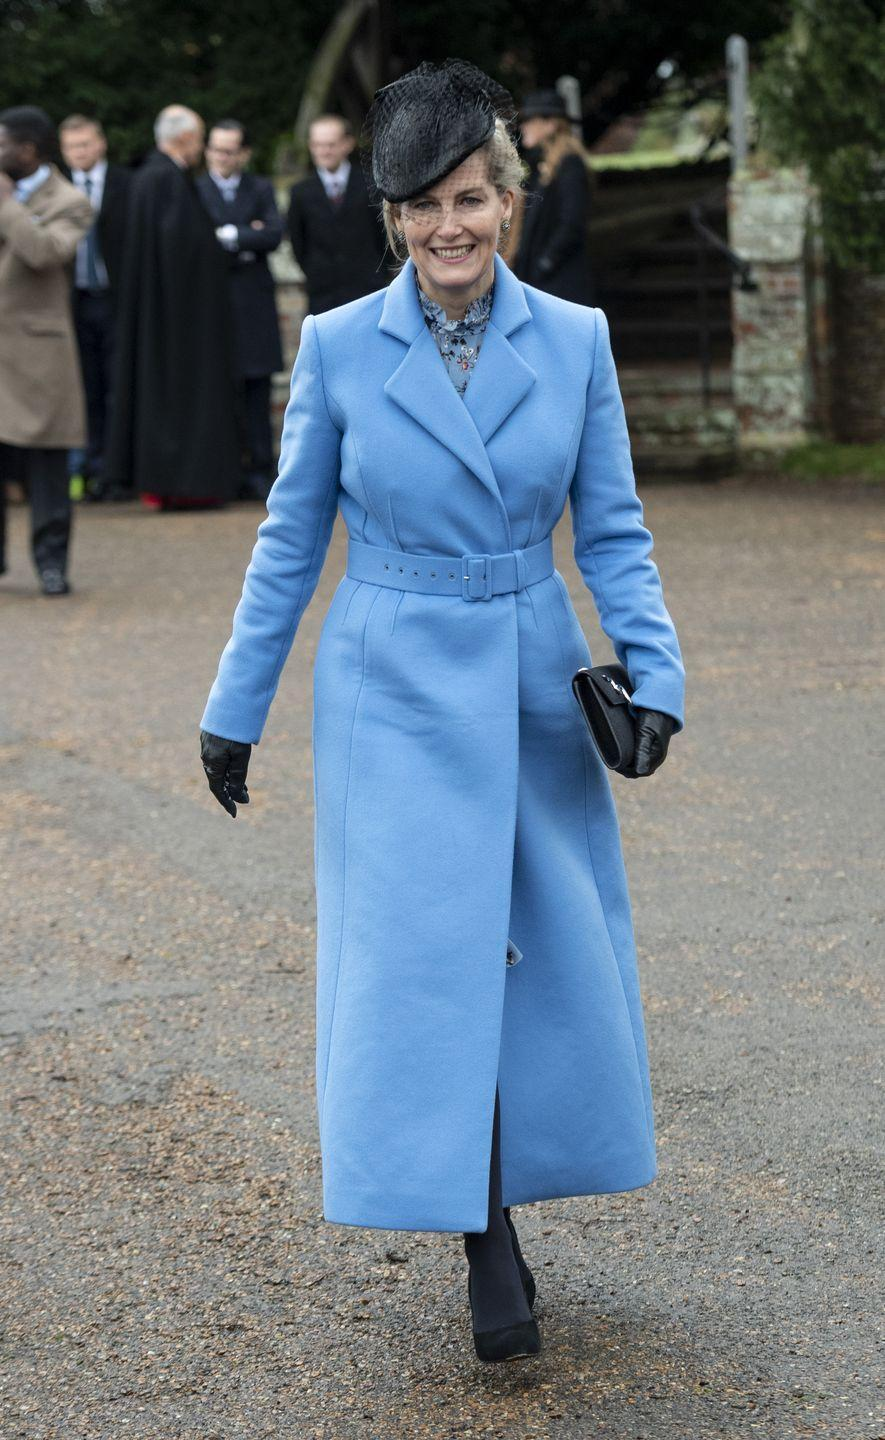 <p>The Countess of Wessex looked chic in a belted light blue coat as she joined the rest of the royal family for the Christmas Day church service at Sandringham. Sophie topped off her look with a black fascinator, clutch and pumps. </p>